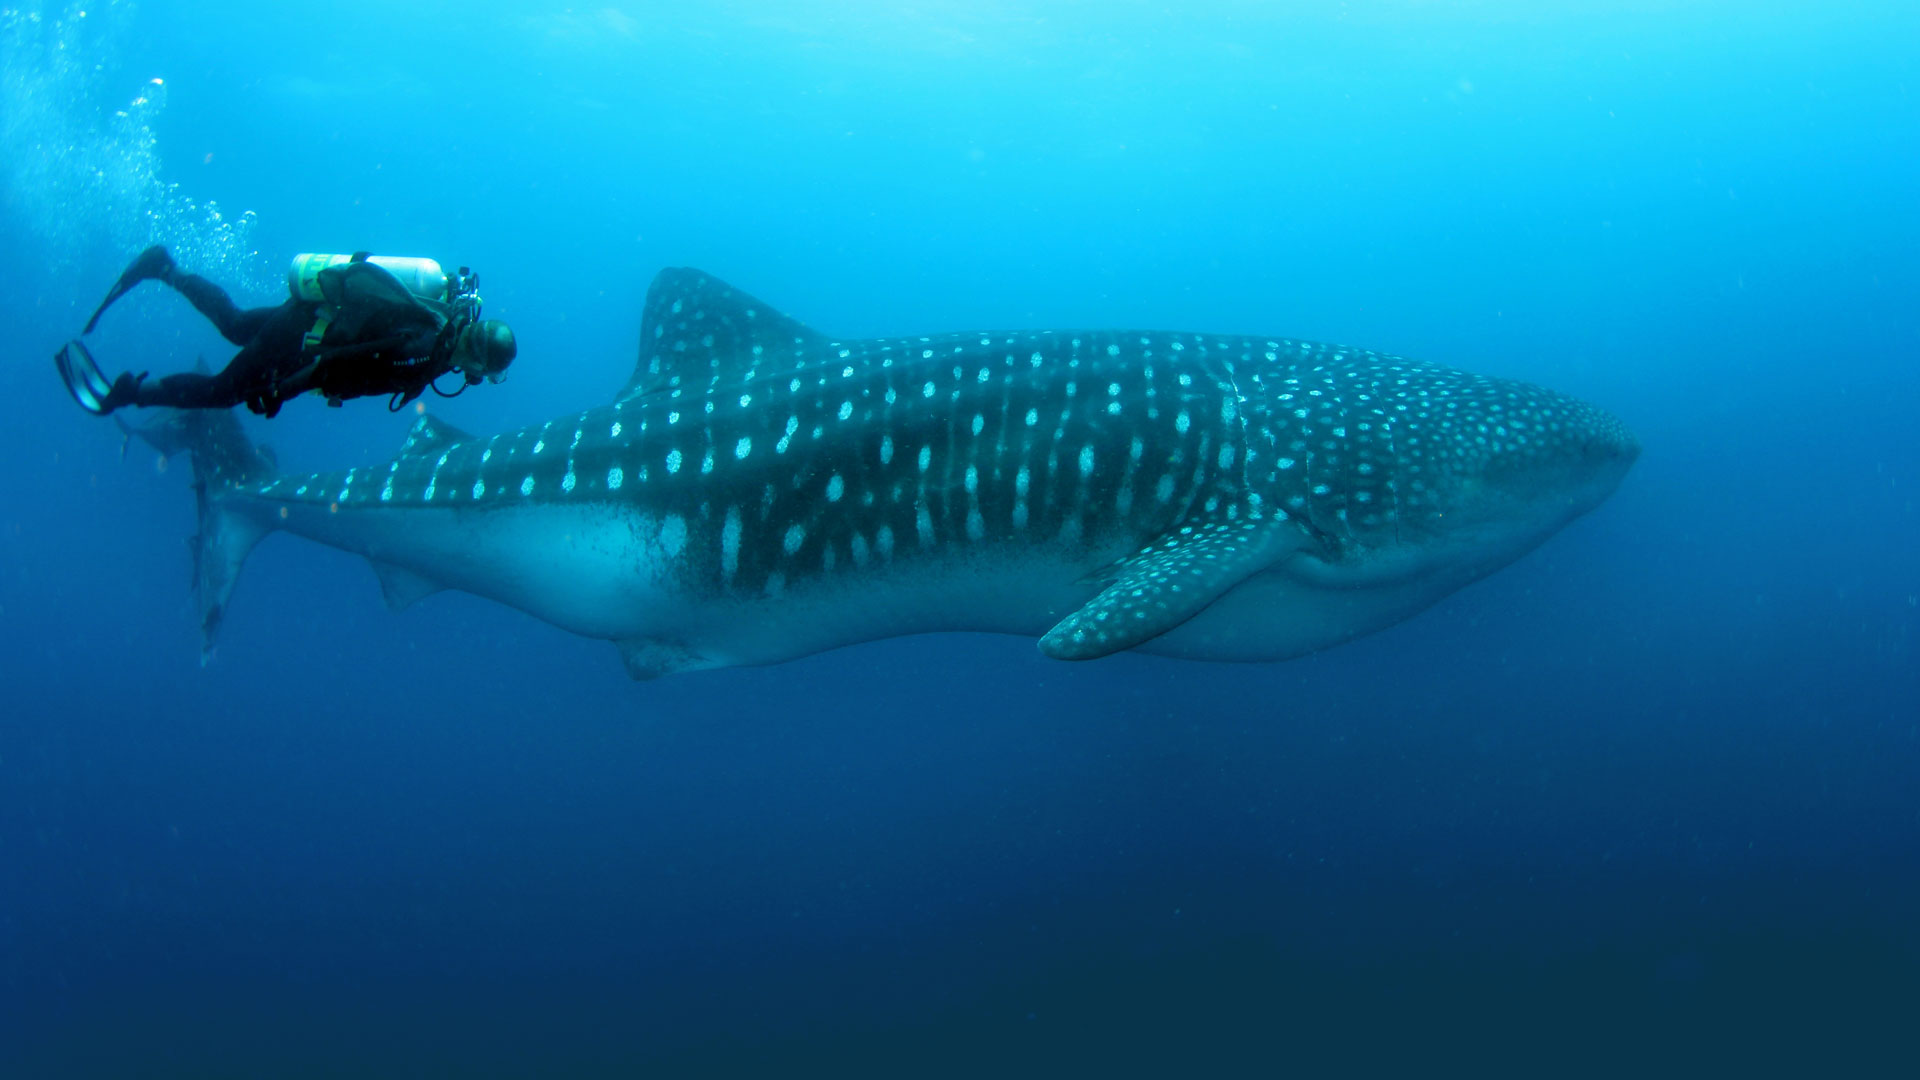 Whale shark dive, Galapagos Islands